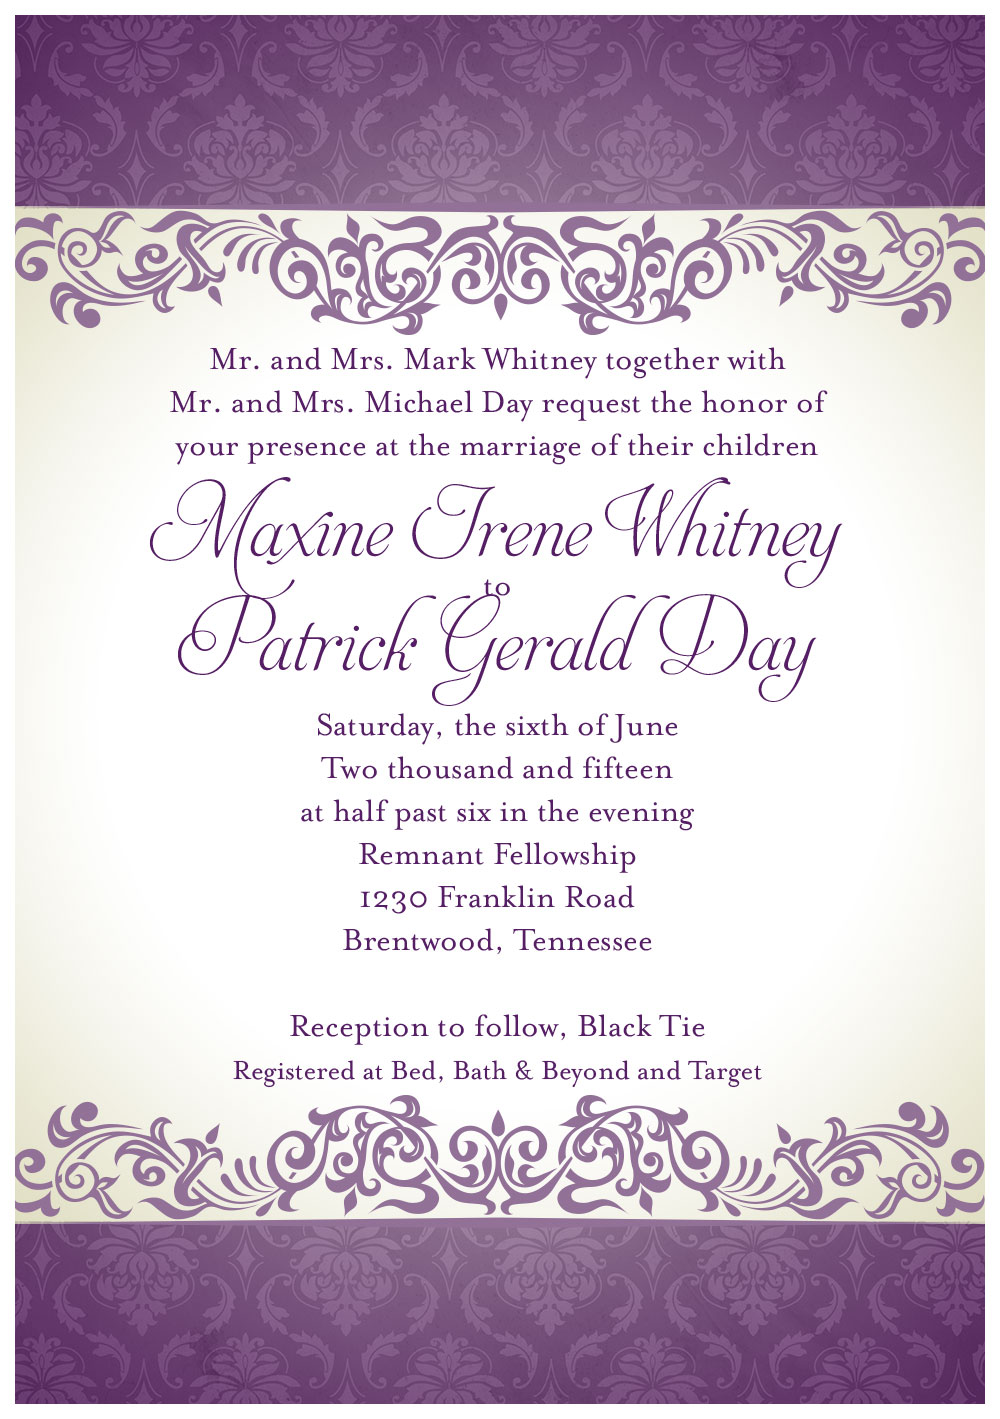 Day Whitney Wedding Invitation